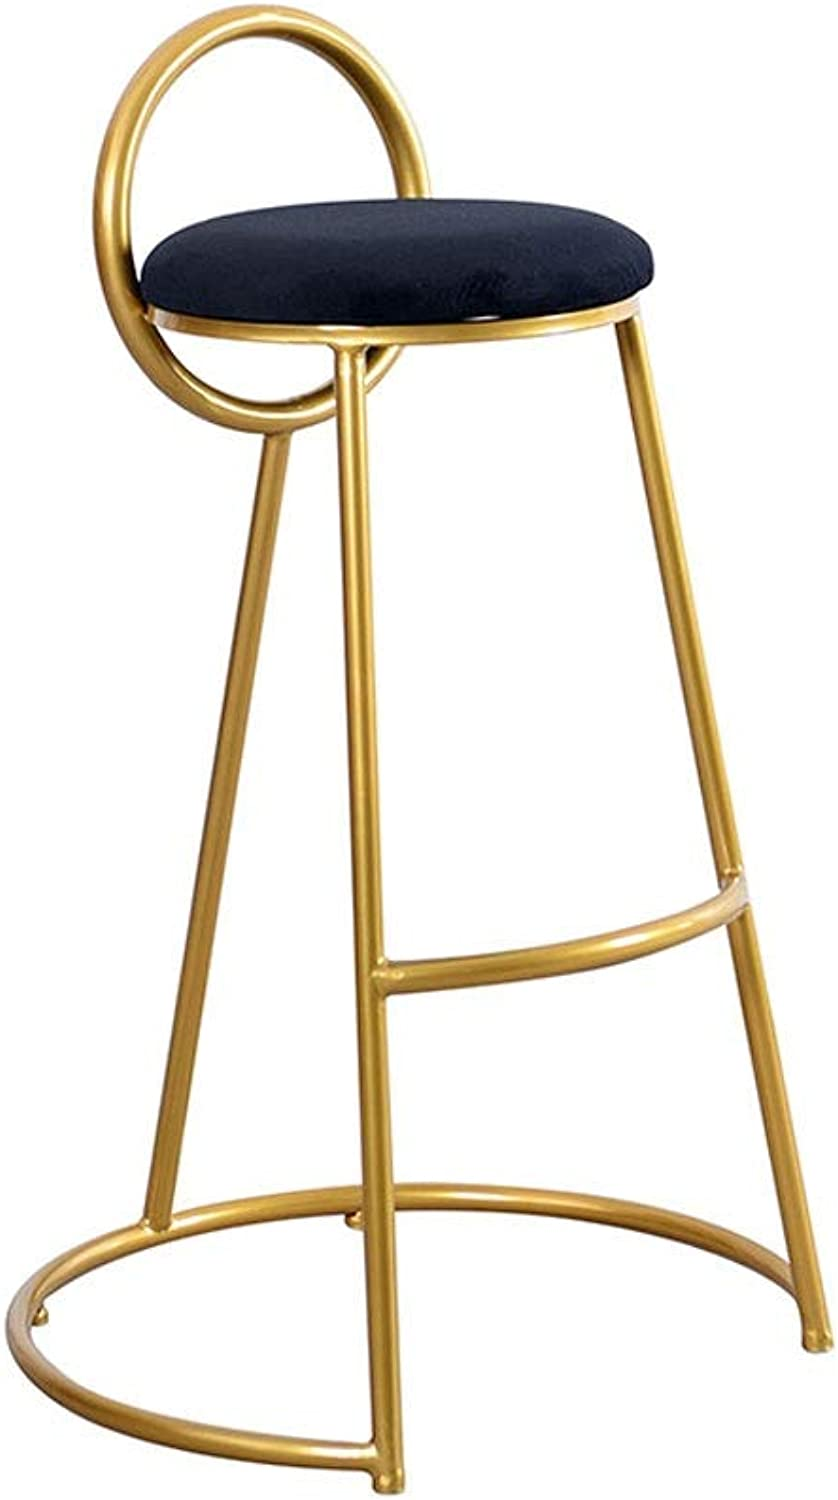 Metal Bar Chair Back Kitchen Bar High Stool gold Metal Legs   Casual Padded Dining Chair   Maximum Load 200 Kg - Pink Green Black (color   Black, Size   65CM)